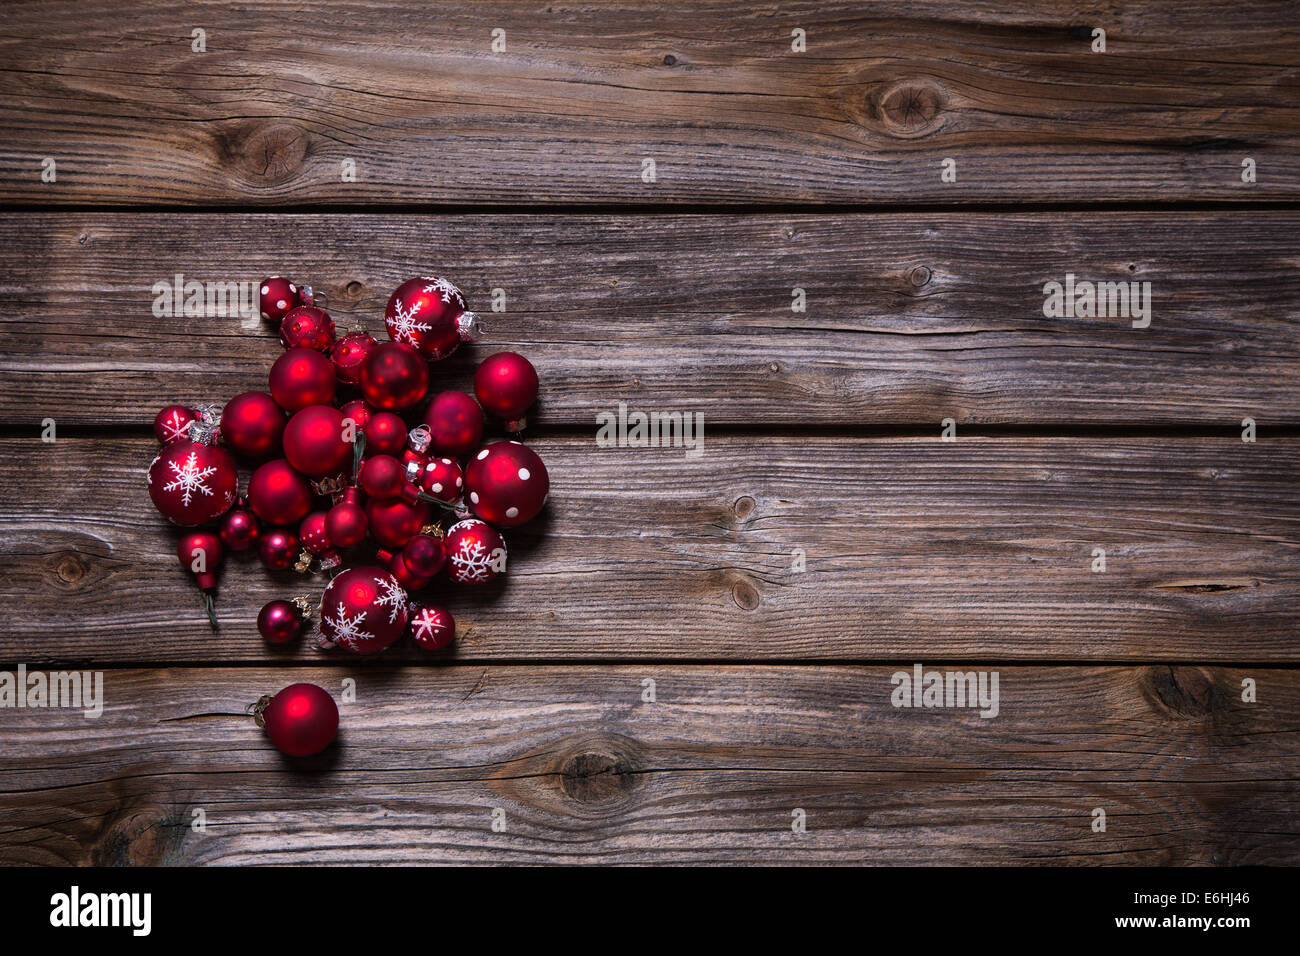 Christmas Decoration Red Balls On Old Wooden Rustic Country Stock